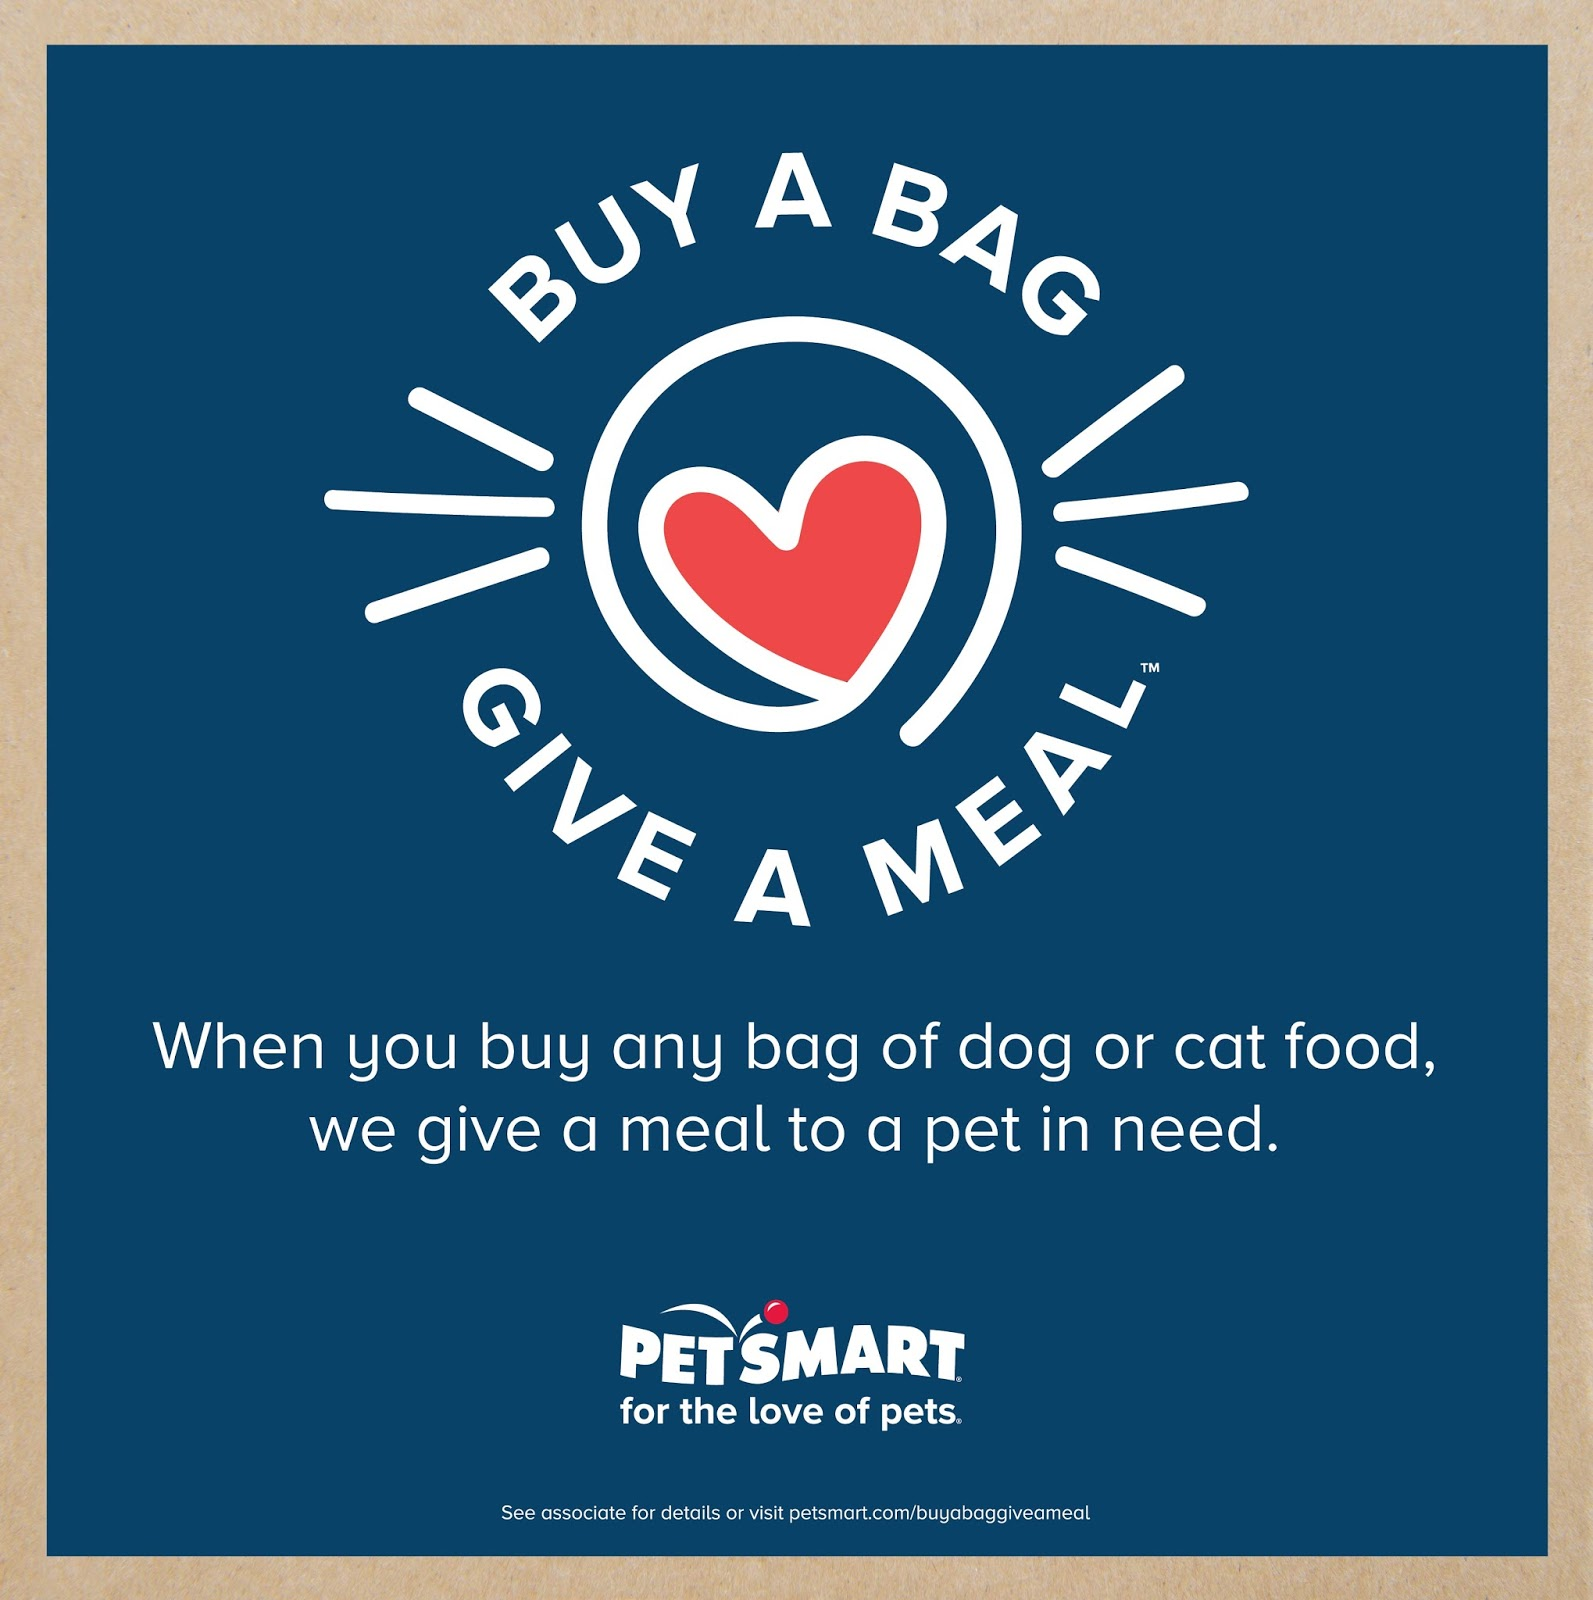 Help PetSmart Help Pets In Need. Buy a Bag, Give a Meal